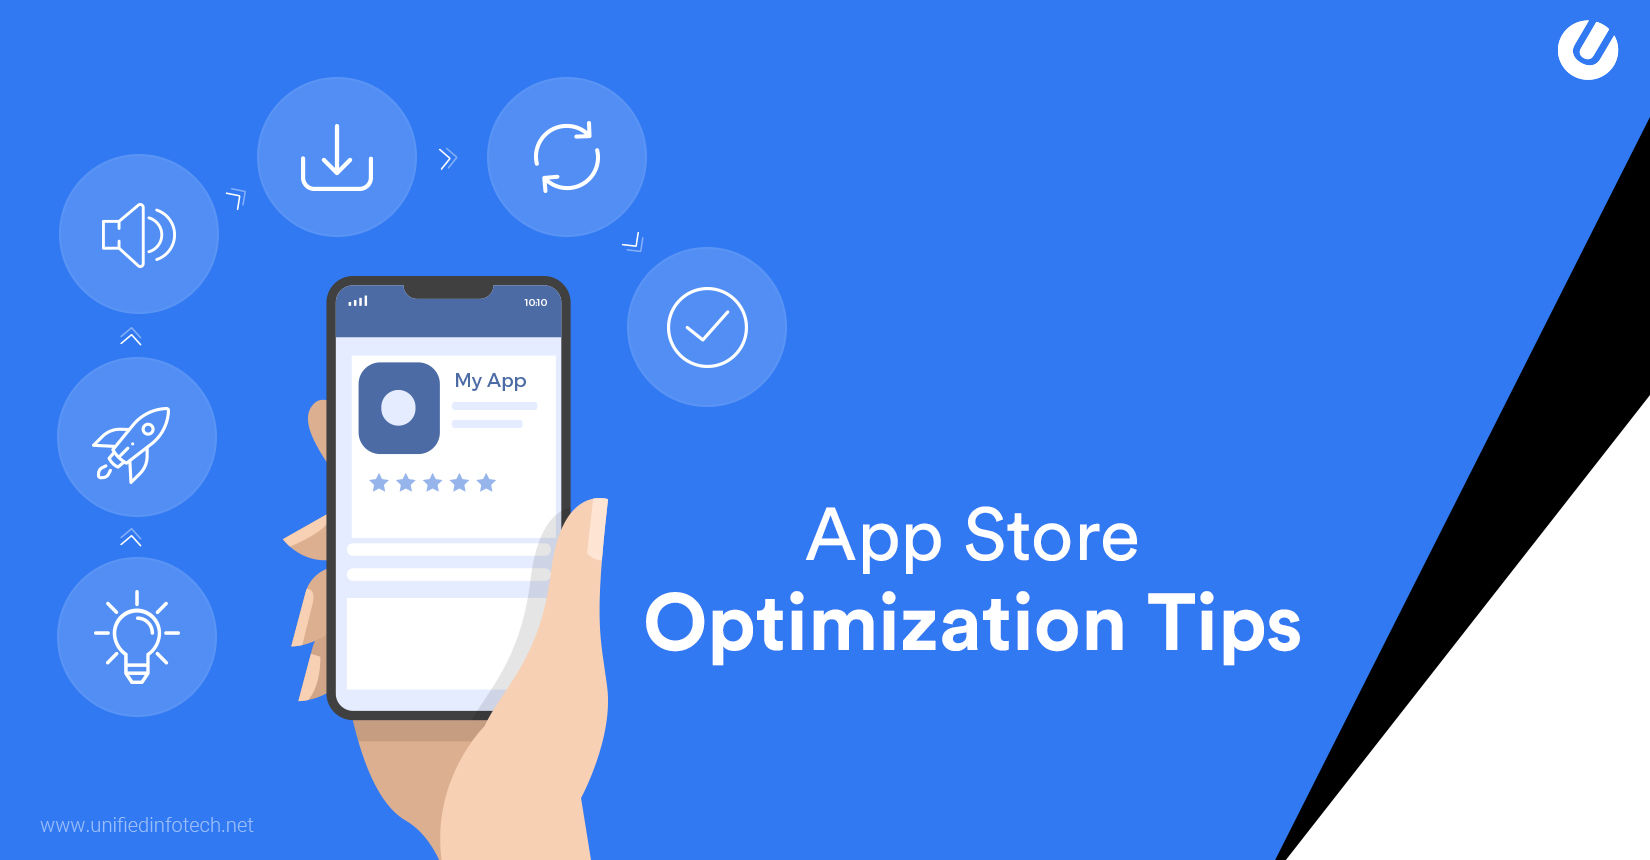 App Store Optimization - How to Rank Your App Higher | Unified Infotech